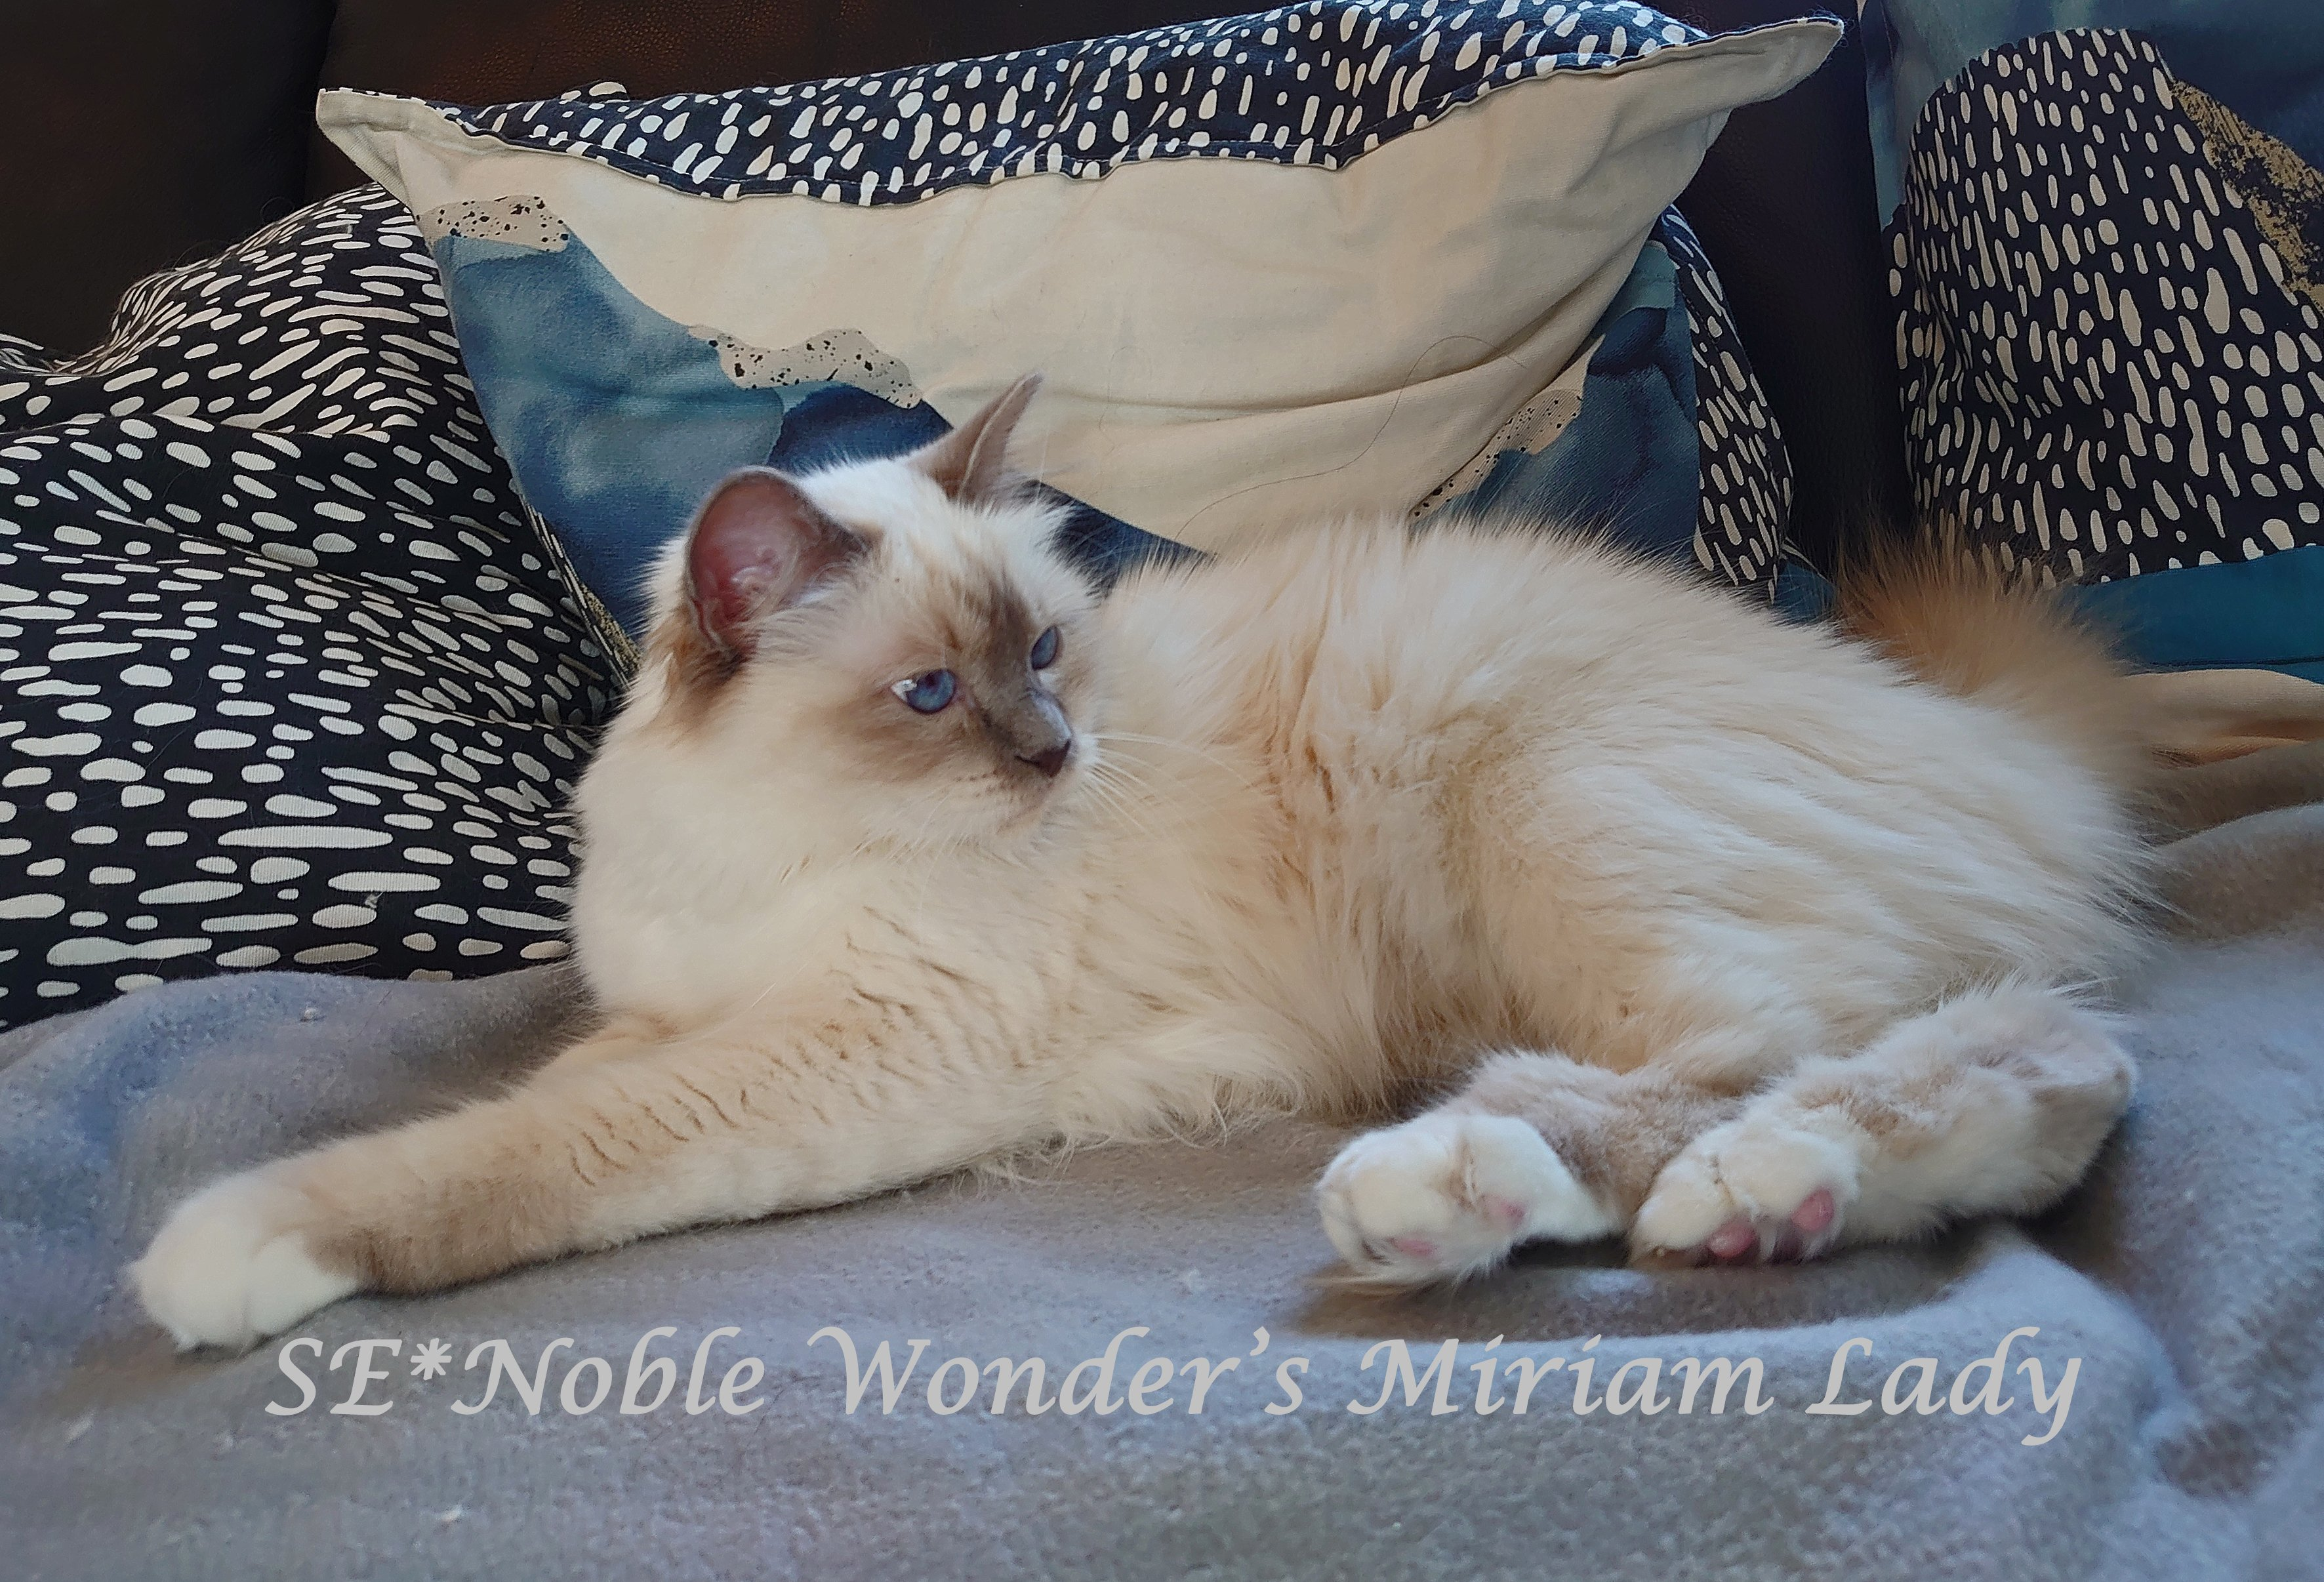 SE*Noble Wonder's Josselyn Lady